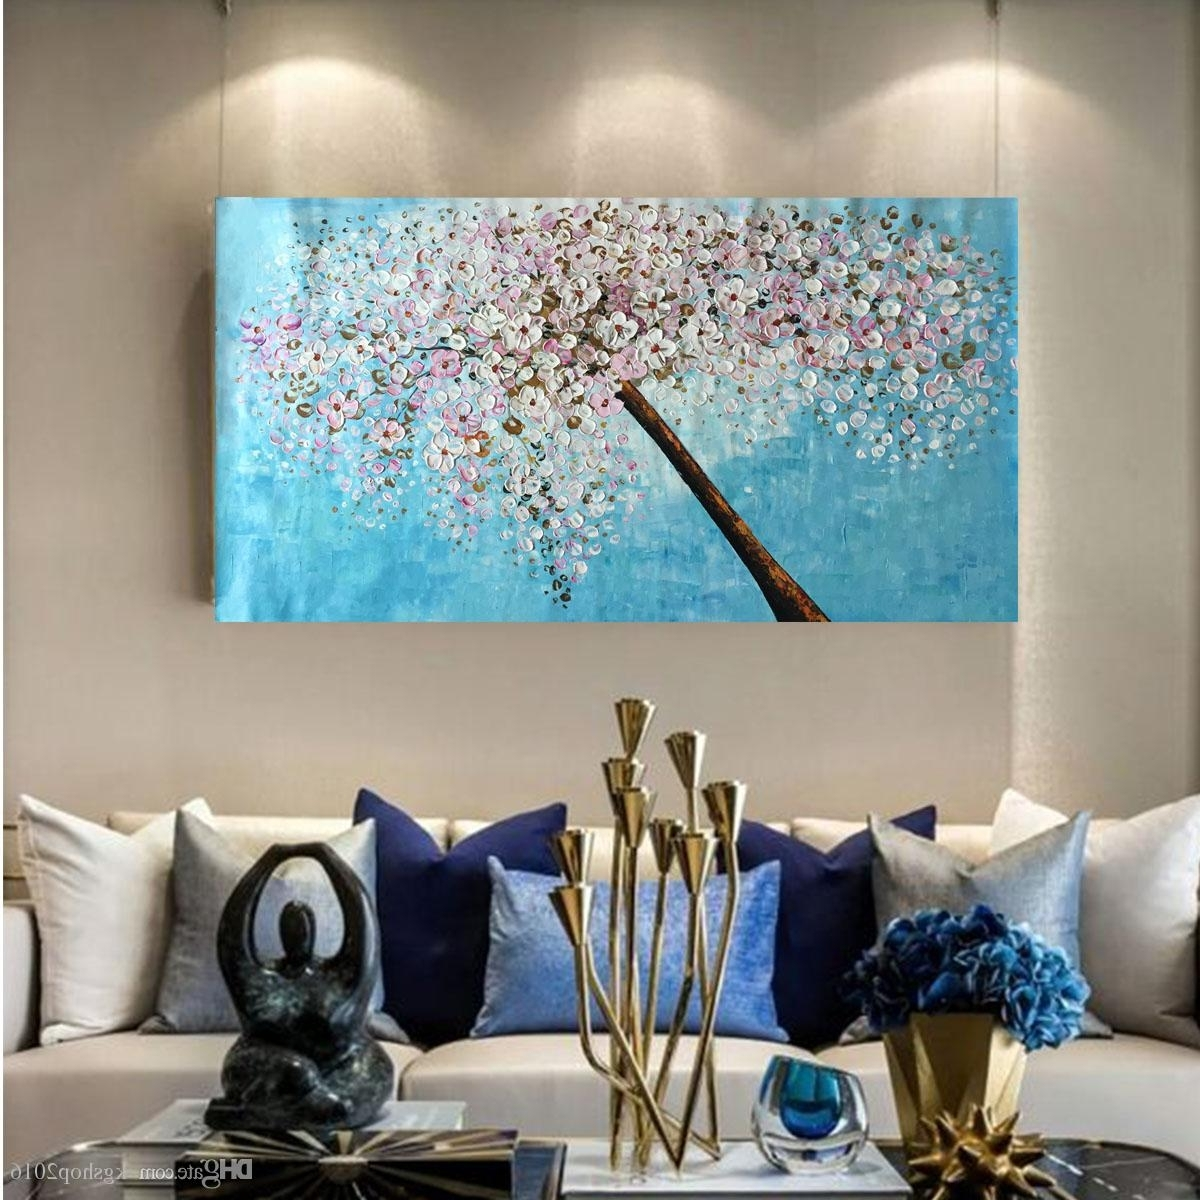 2018 Kgtech Thick Textured Acrylic Paintings 3D Floral Wall Art With Regard To Recent Acrylic Wall Art (View 4 of 20)